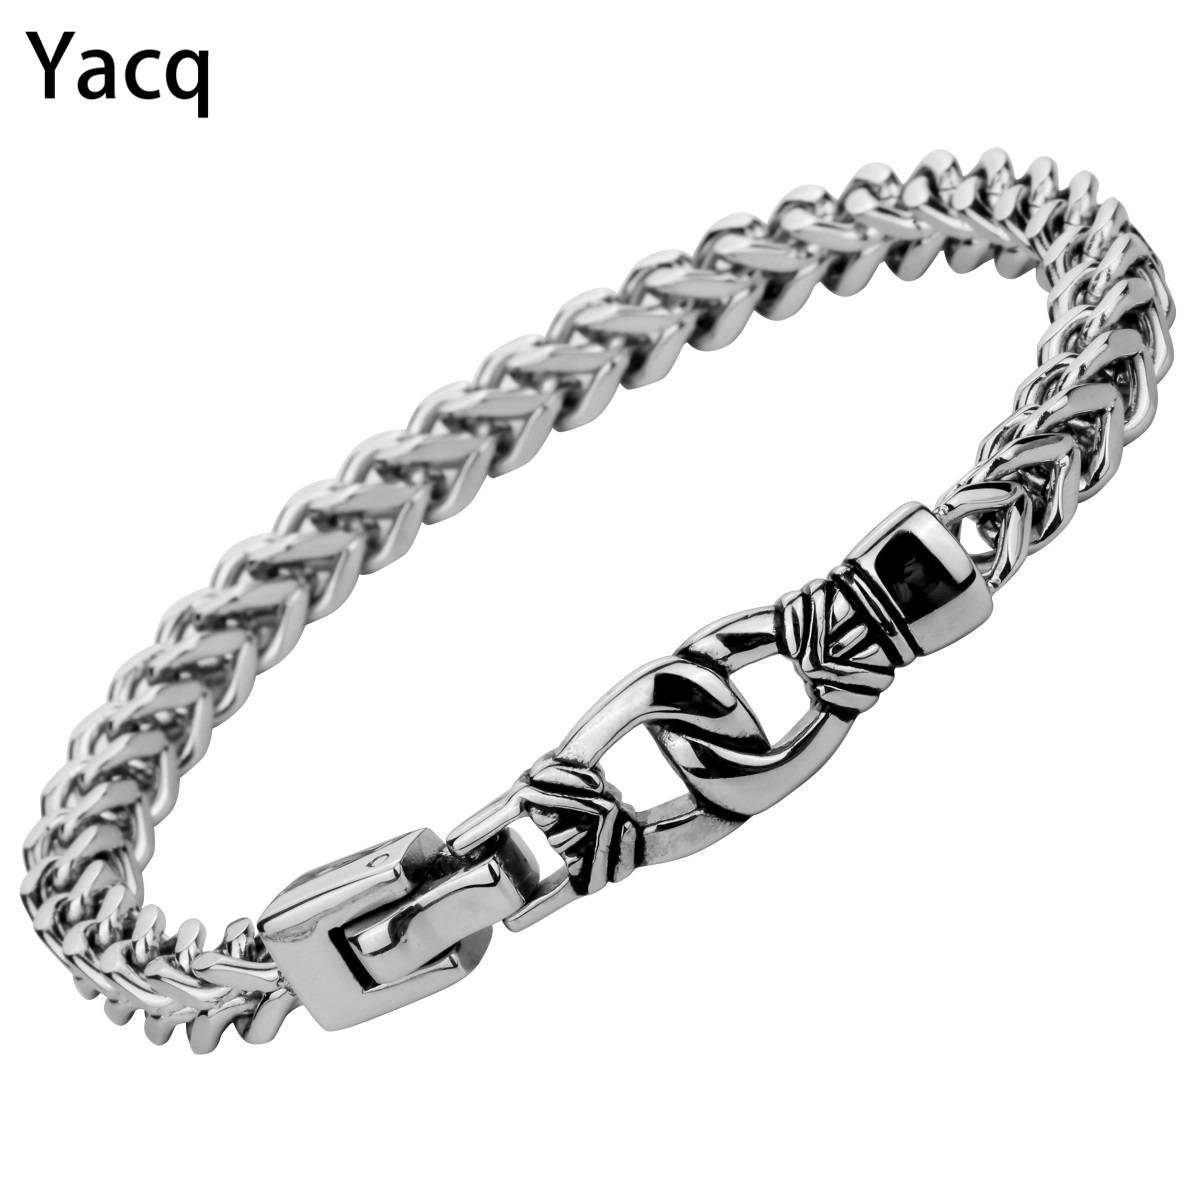 Mens Stainless Steel Chain link Bracelet Biker Heavy Jewelry Fathers Day Gifts for Dad Him Boyfriend dropshipping 8.5